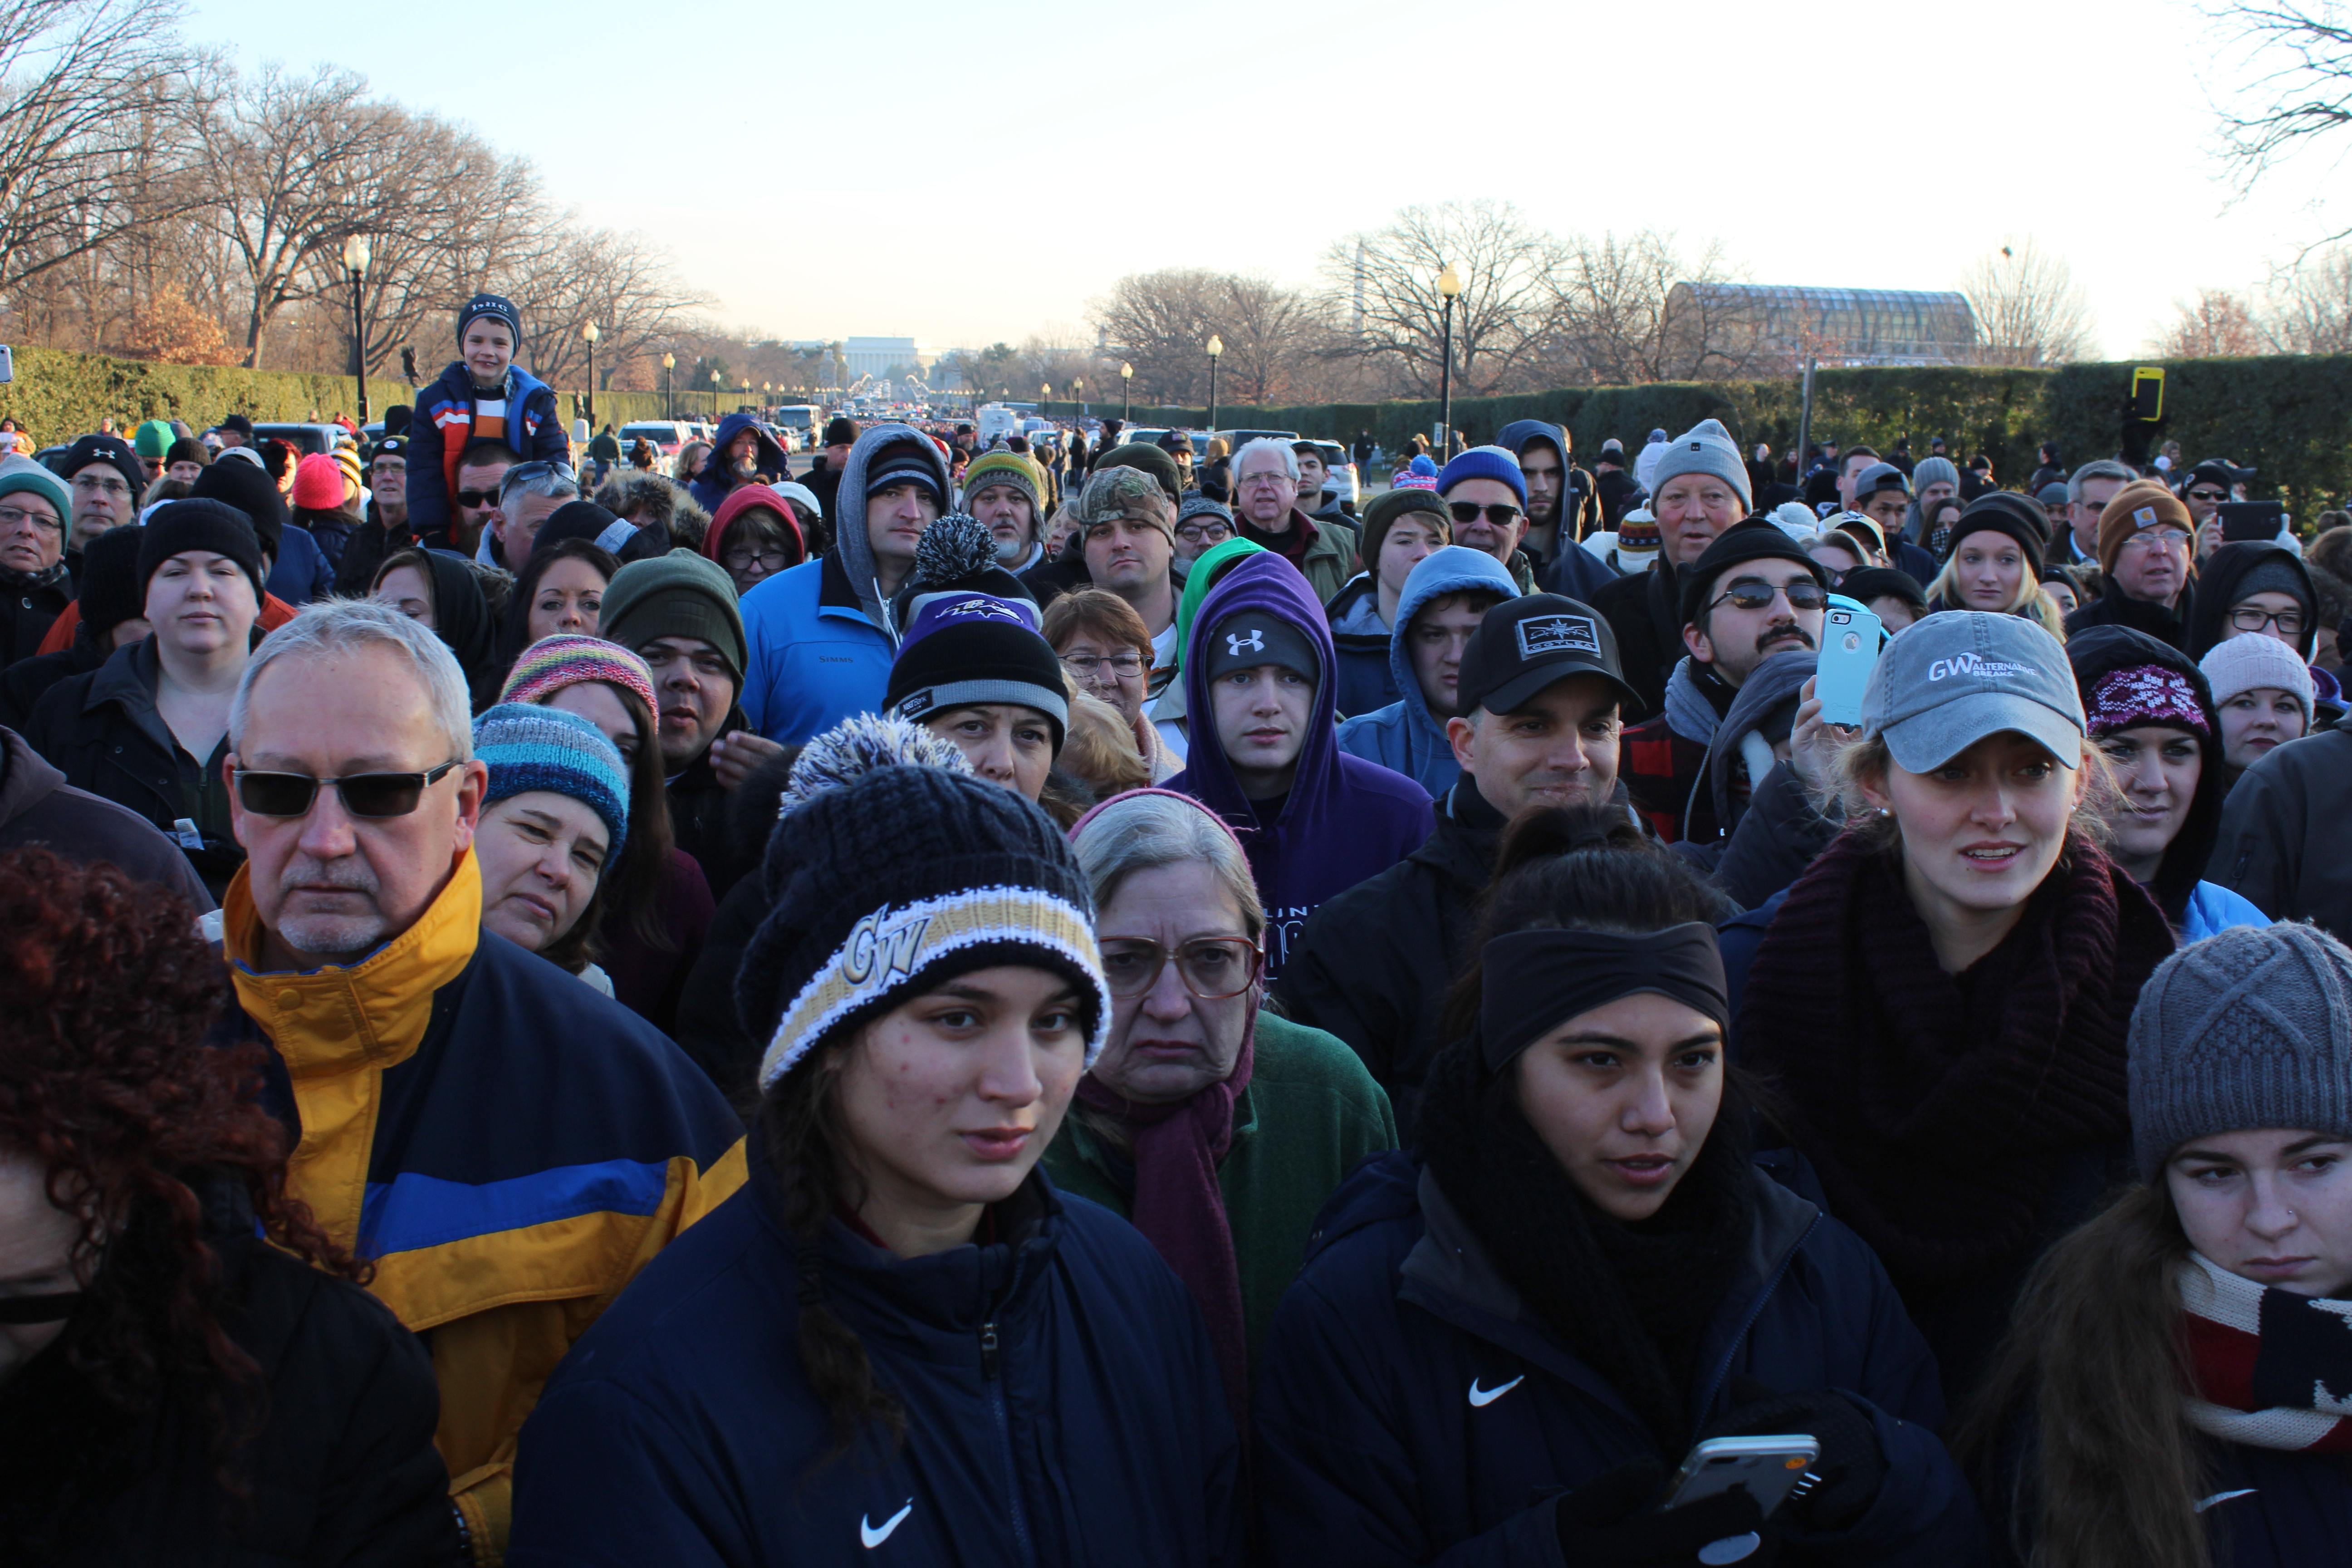 Wreaths Across America Crowd Opening Ceremony (Julia Nista/The Daily Caller)